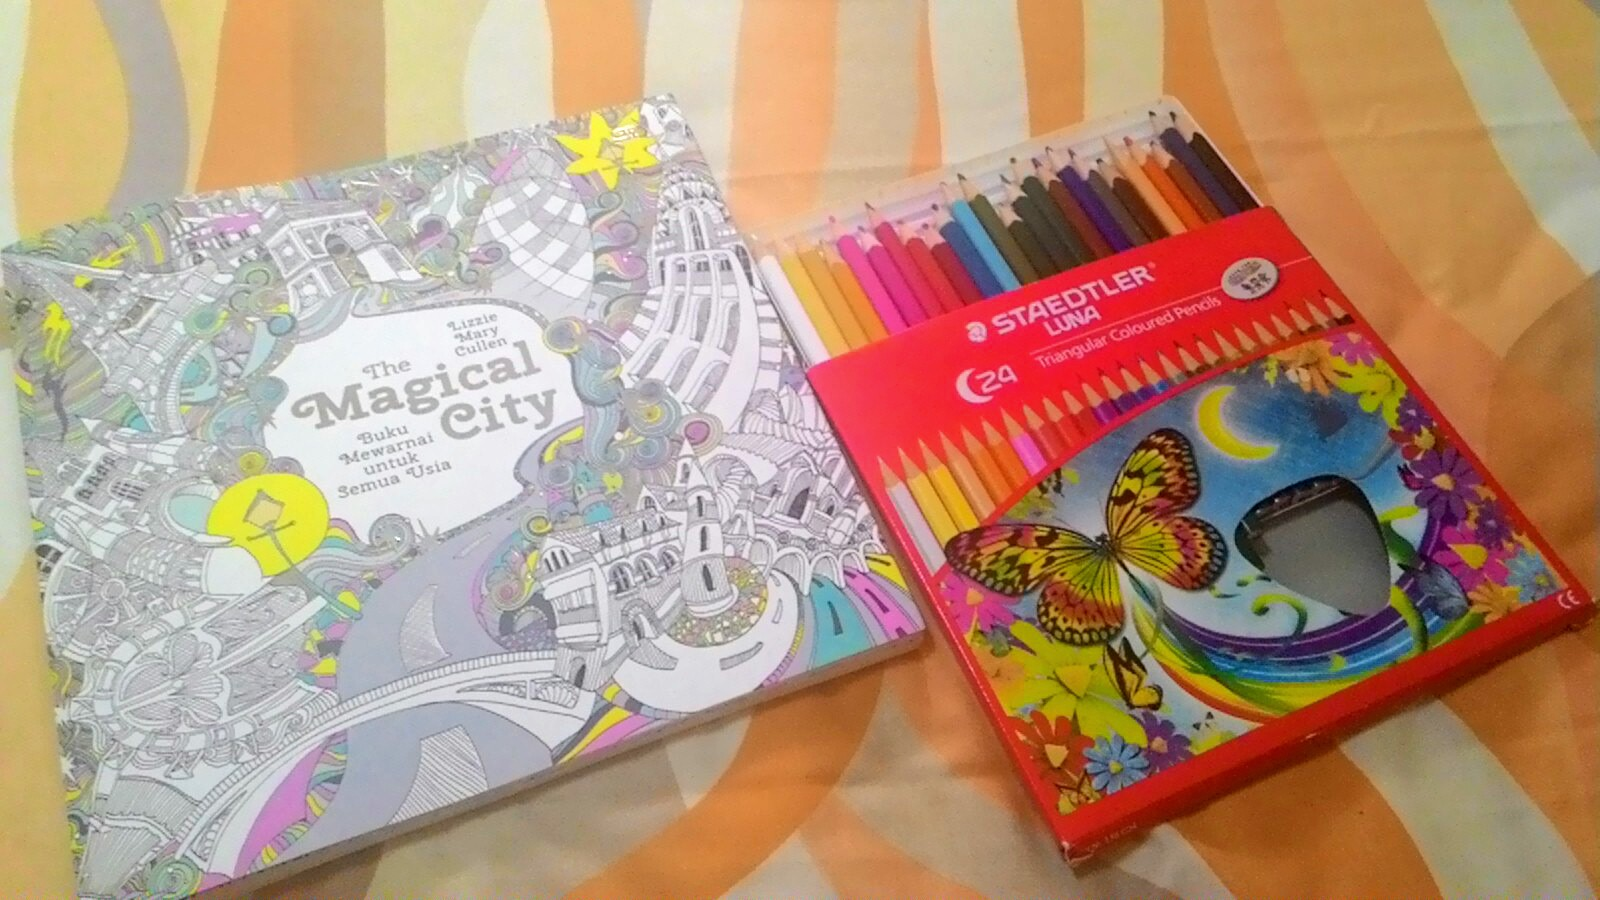 Reading In The Morning The Magical City Coloring Book